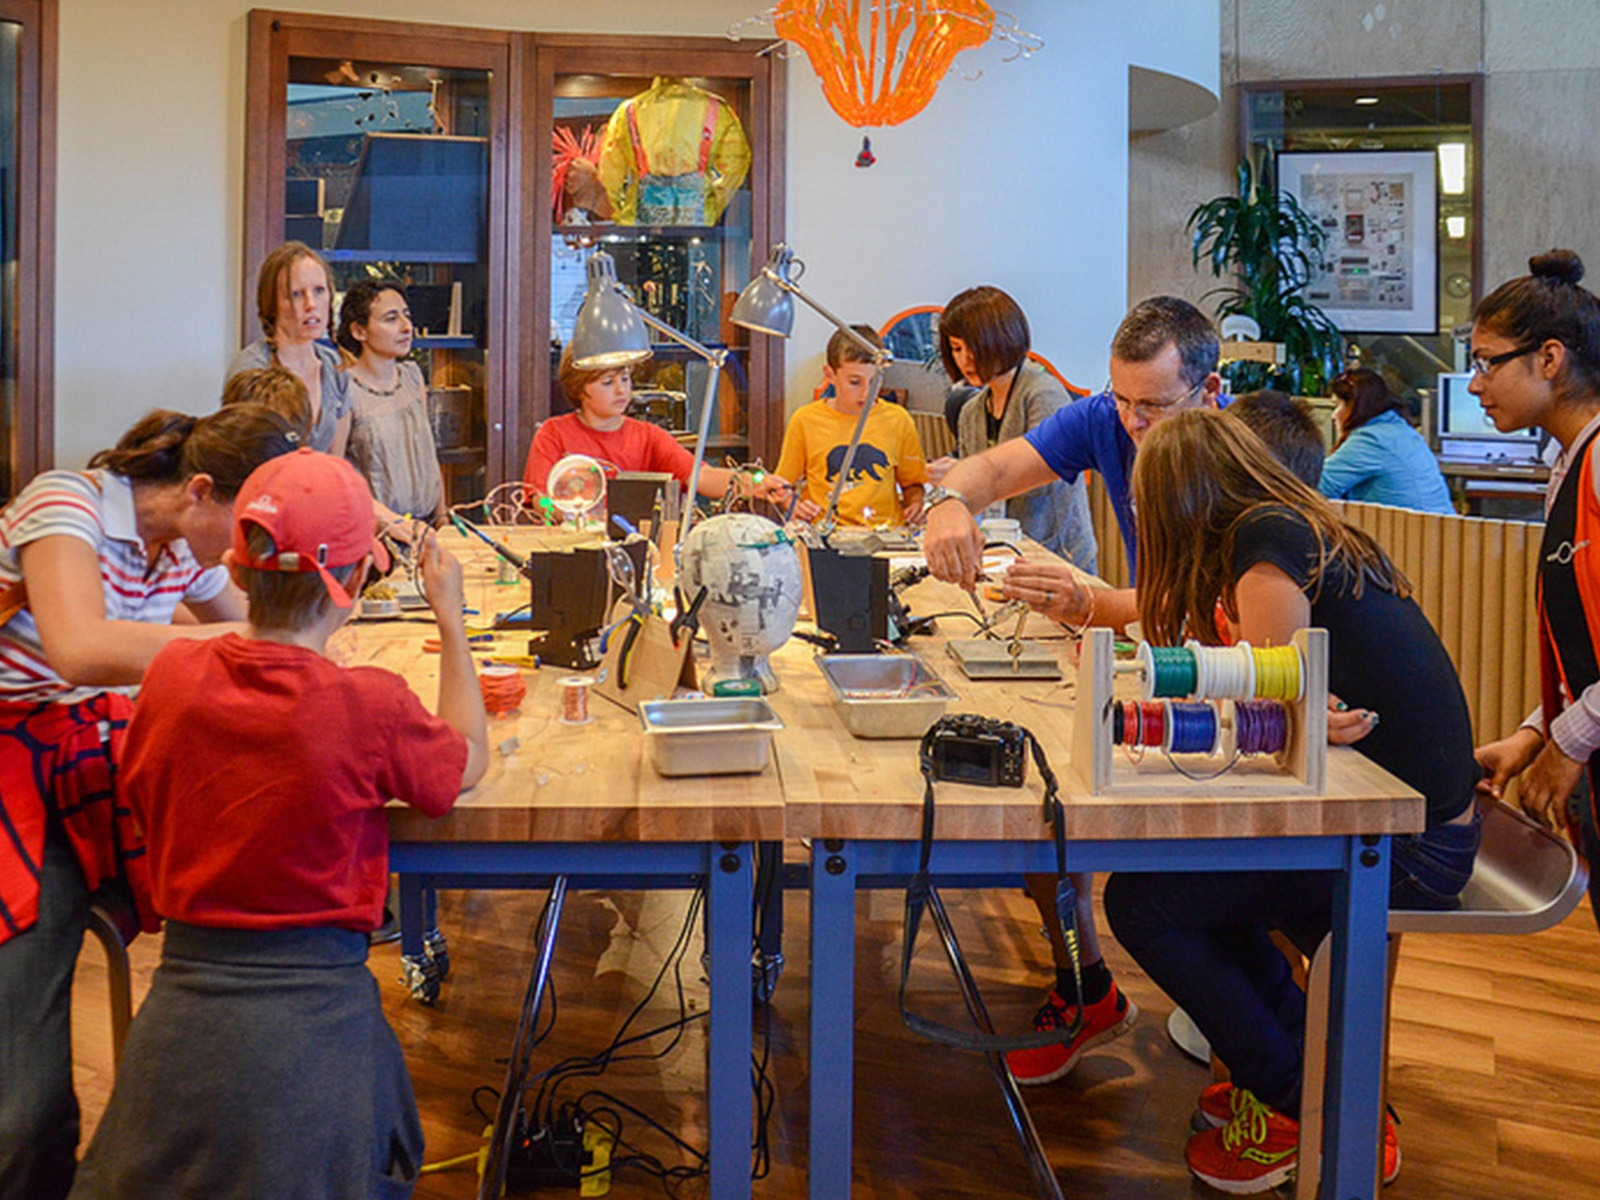 The Tinkering Studio, and The Exploratorium as a whole, draws 1.1 million children and adults every year. Participants get to work with resident makers and artists to design all manner of mechanisms, both practical and fantastical.